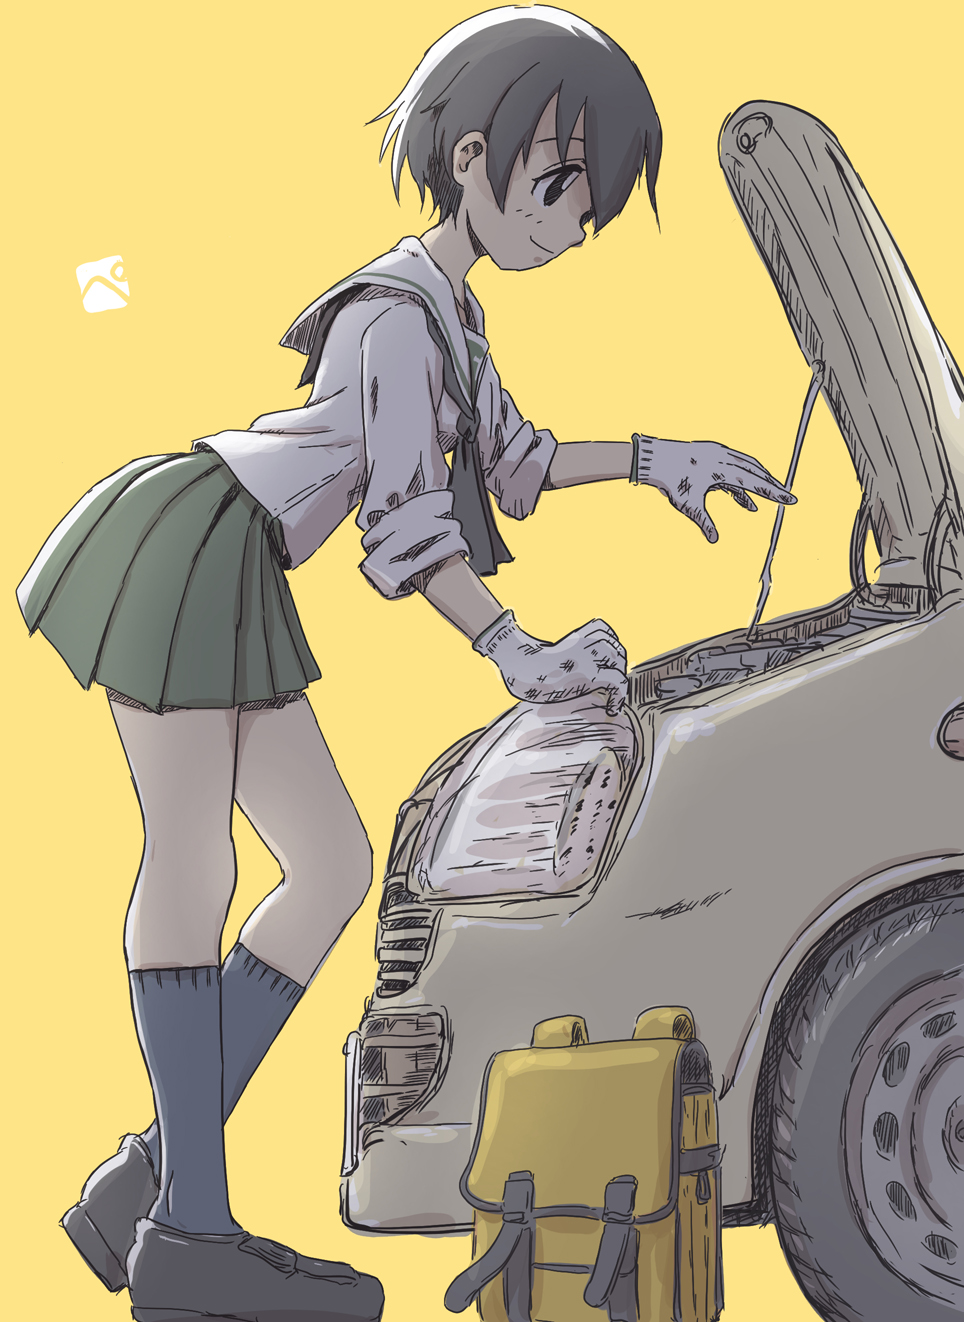 1girl artist_logo backpack bag bangs black_legwear black_neckwear blouse brown_eyes brown_footwear brown_hair car closed_mouth commentary from_behind girls_und_panzer gloves green_skirt ground_vehicle heel_raised highres kainushi leaning_forward loafers long_sleeves miniskirt motor_vehicle nakajima_(girls_und_panzer) neckerchief ooarai_school_uniform pleated_skirt school_uniform serafuku shoes short_hair simple_background skirt sleeves_rolled_up smile socks solo standing white_blouse white_gloves yellow_background